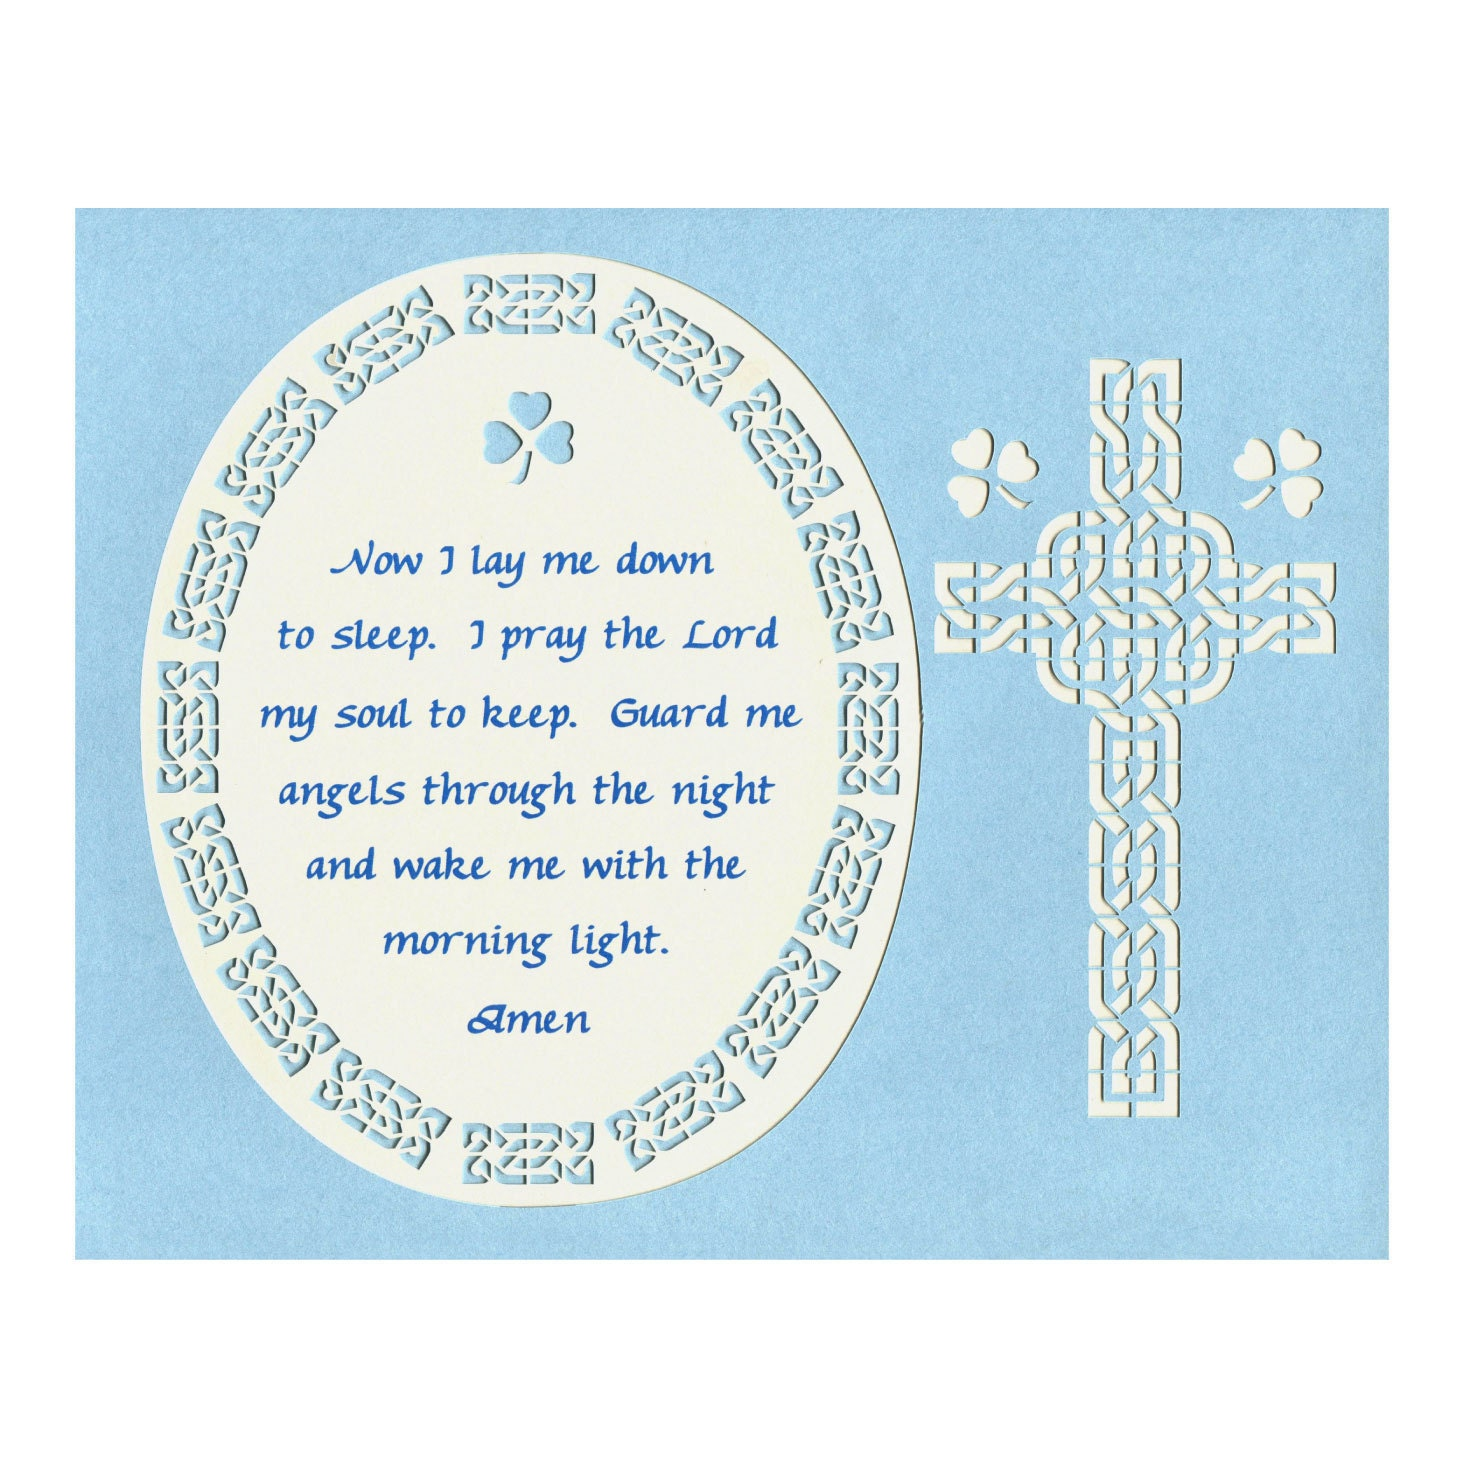 Now i lay me down to sleep wall decal - Now I Lay Me Down Prayer Child Prayer Wall Art Paper Cut Design Celtic Knot Celtic Zoom